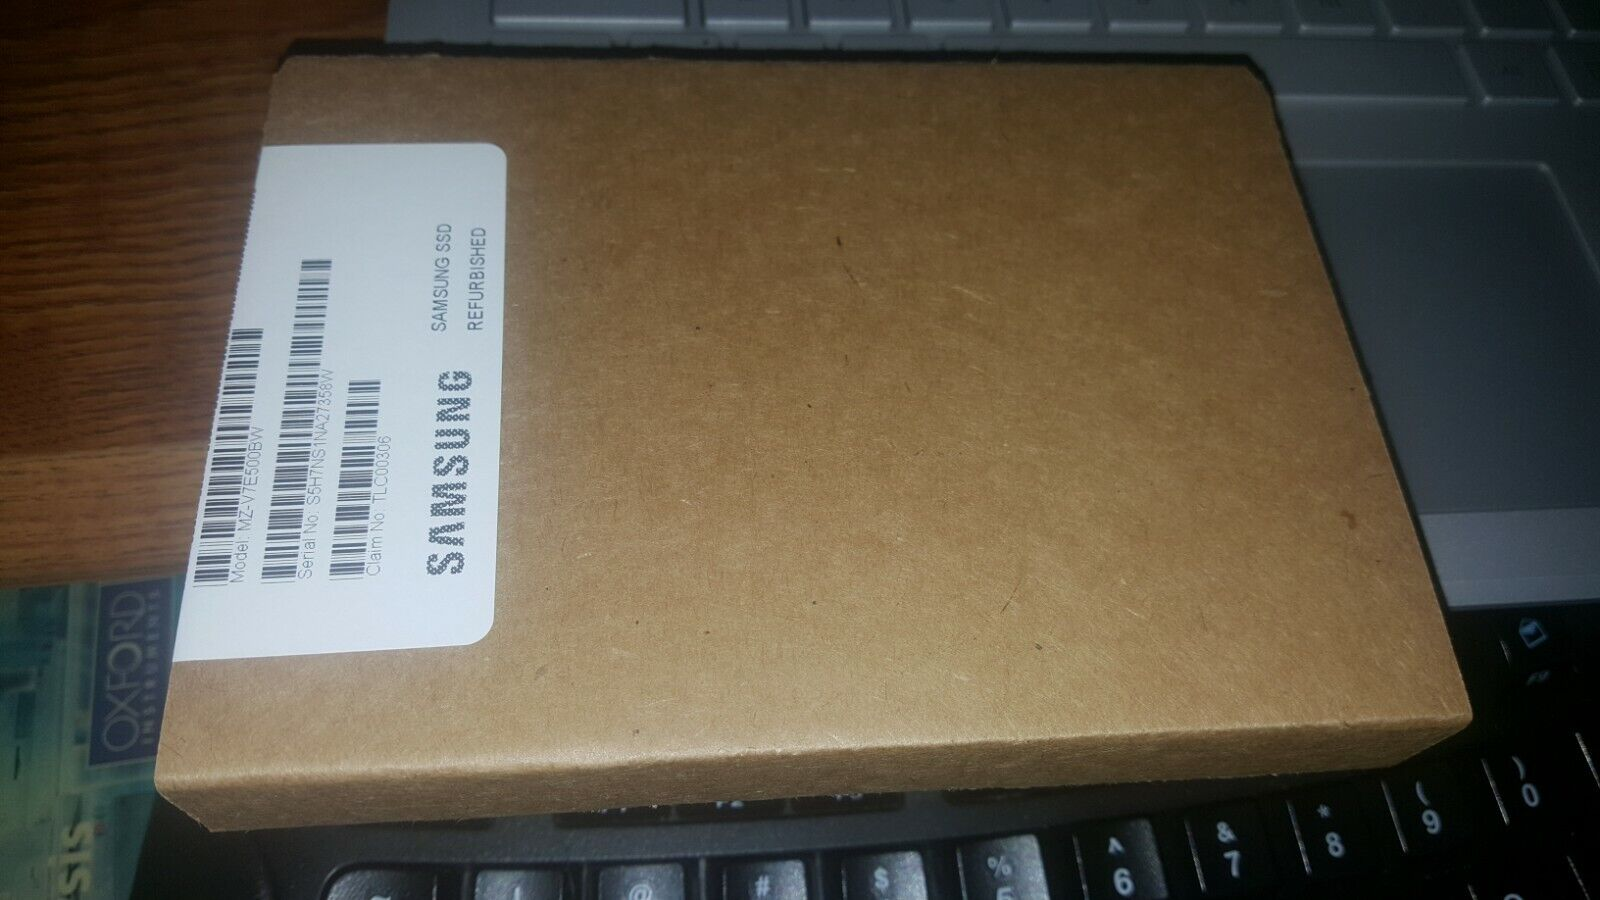 Samsung 970 EVO 500GB, Internal M.2 (MZ-V7E500BW) Solid State Drive. Buy it now for 48.85